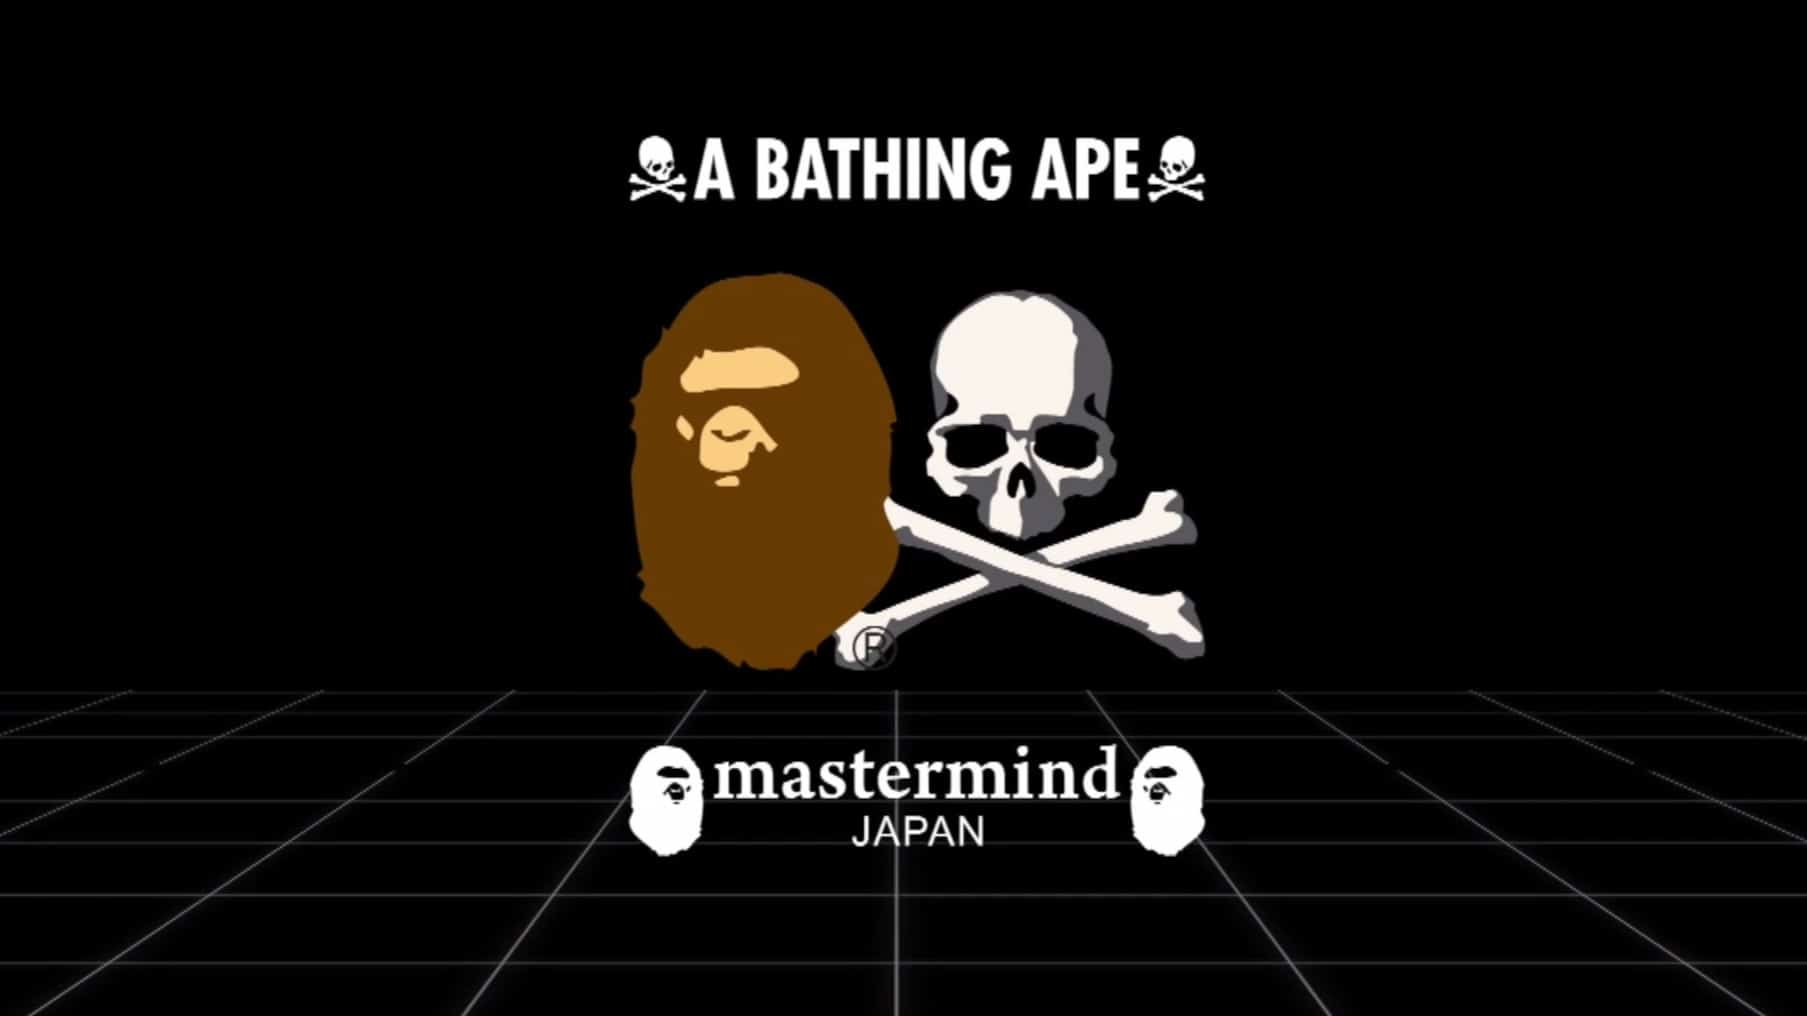 bathing ape 2021 collection